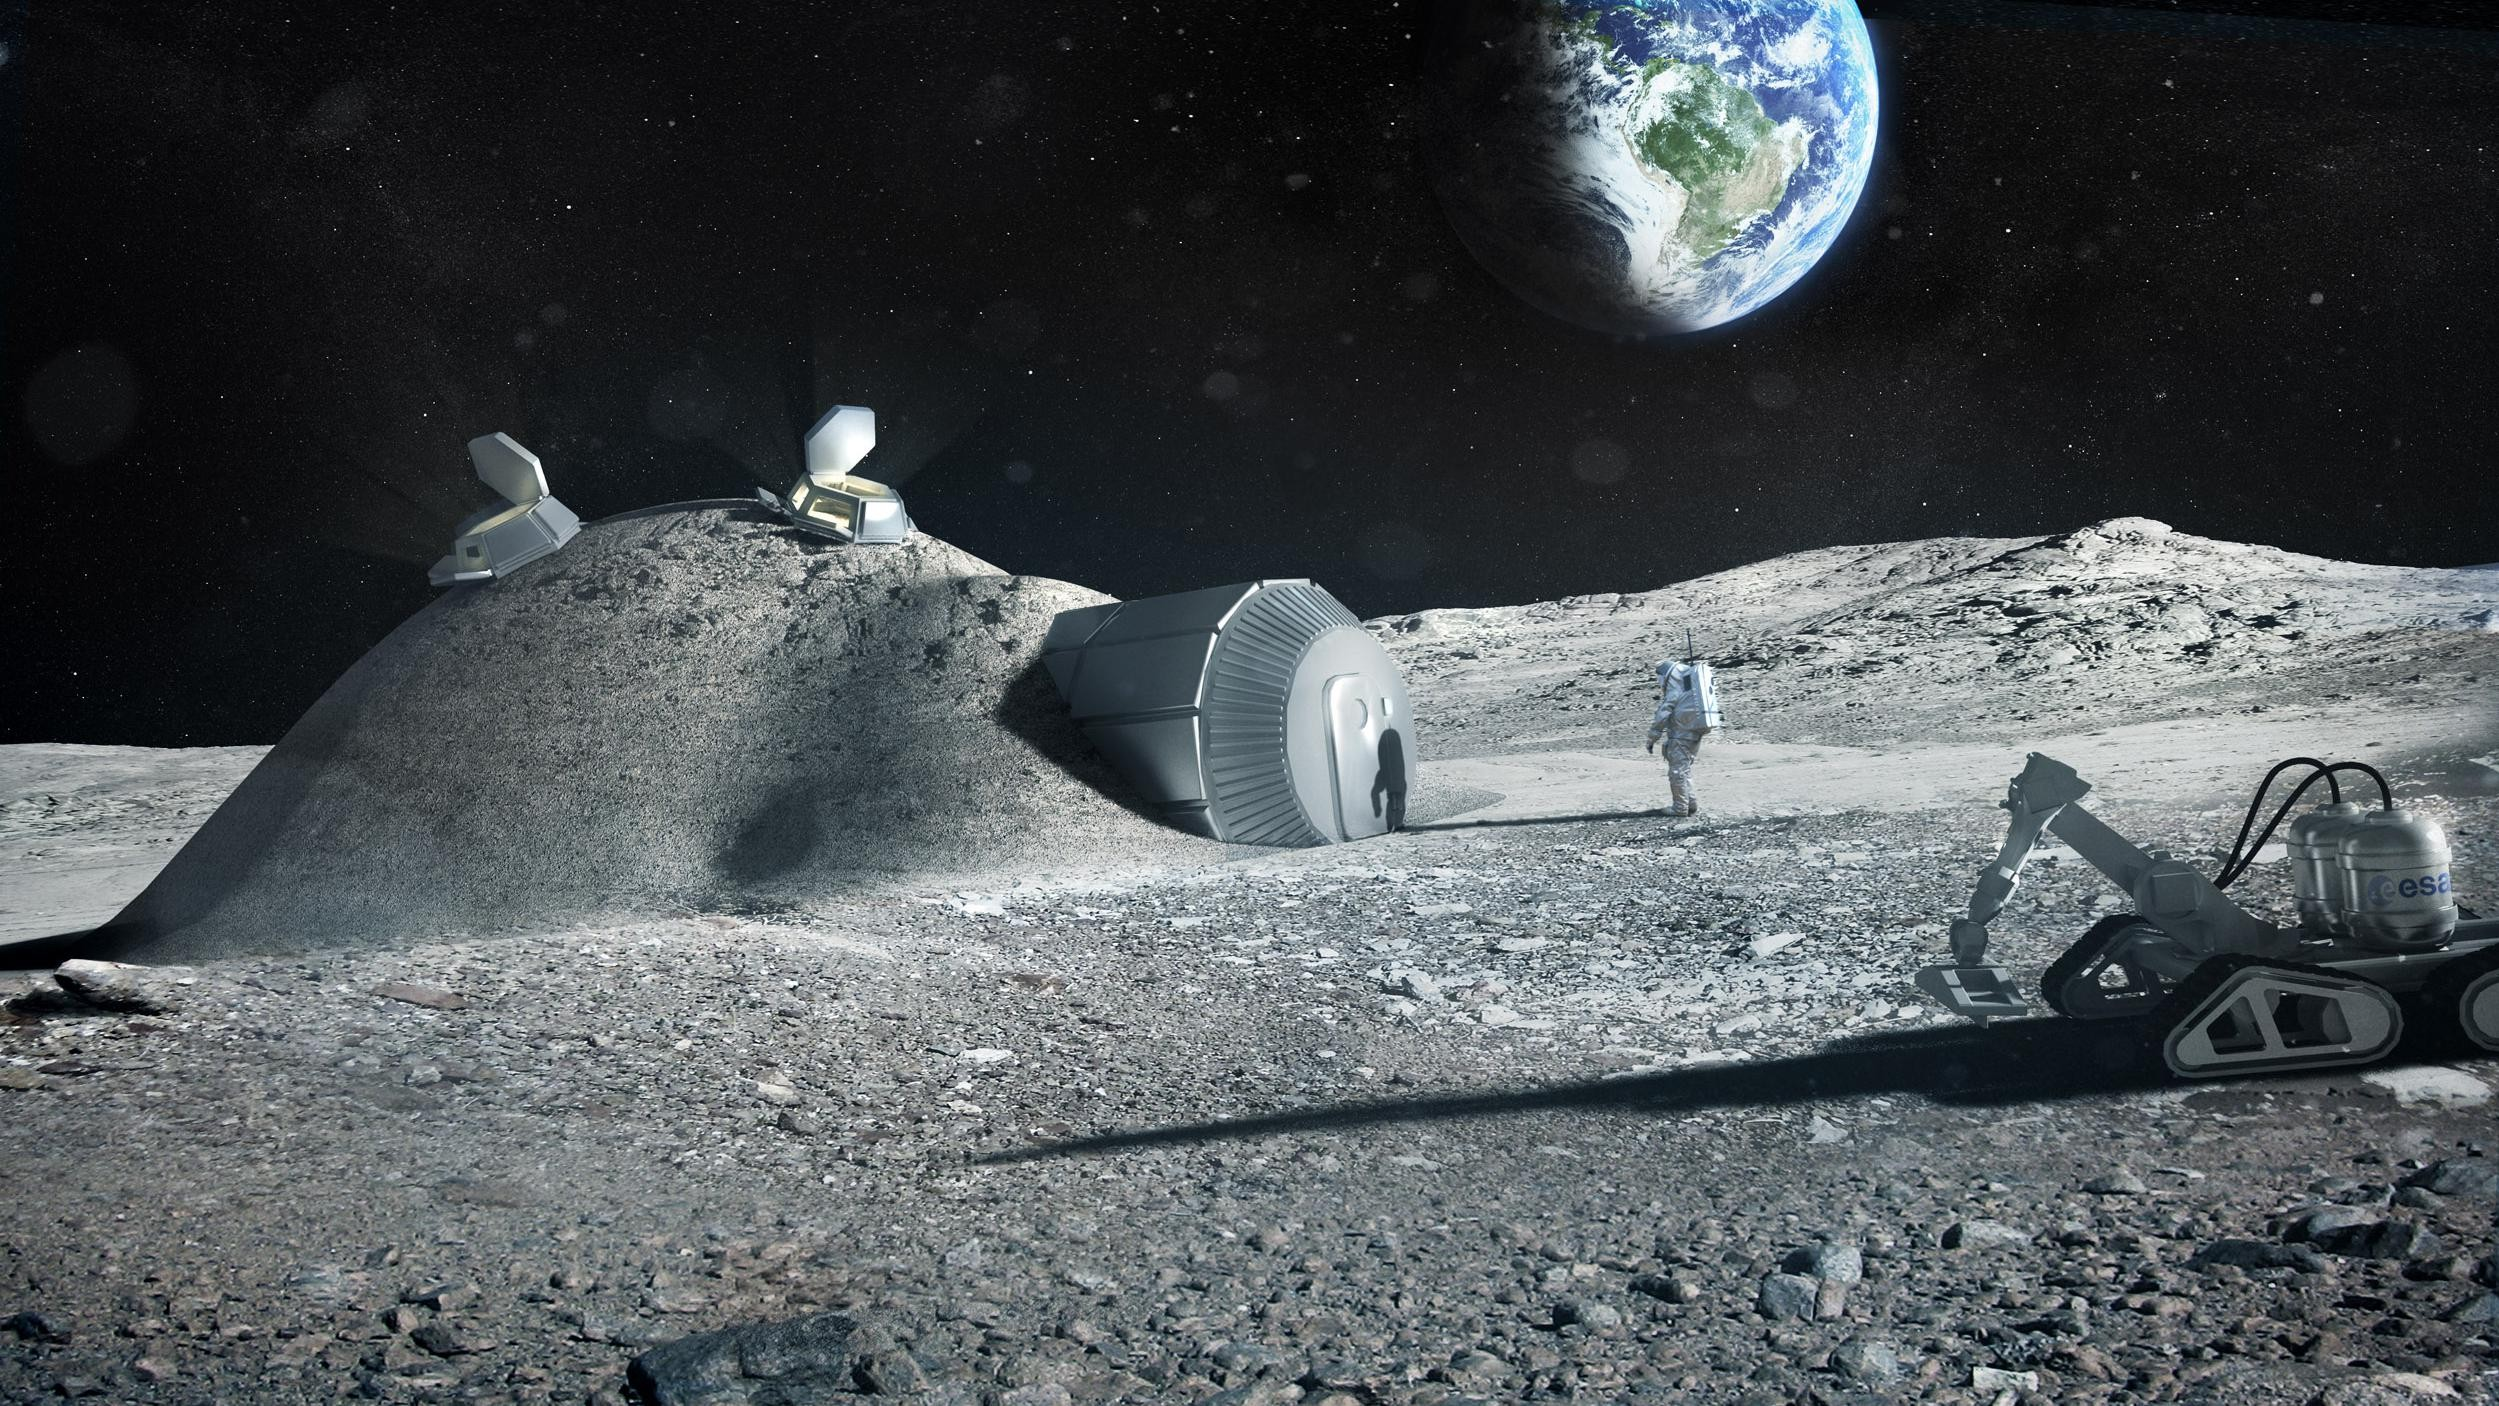 We Can 3D Print Anything, Including Moon Habitats